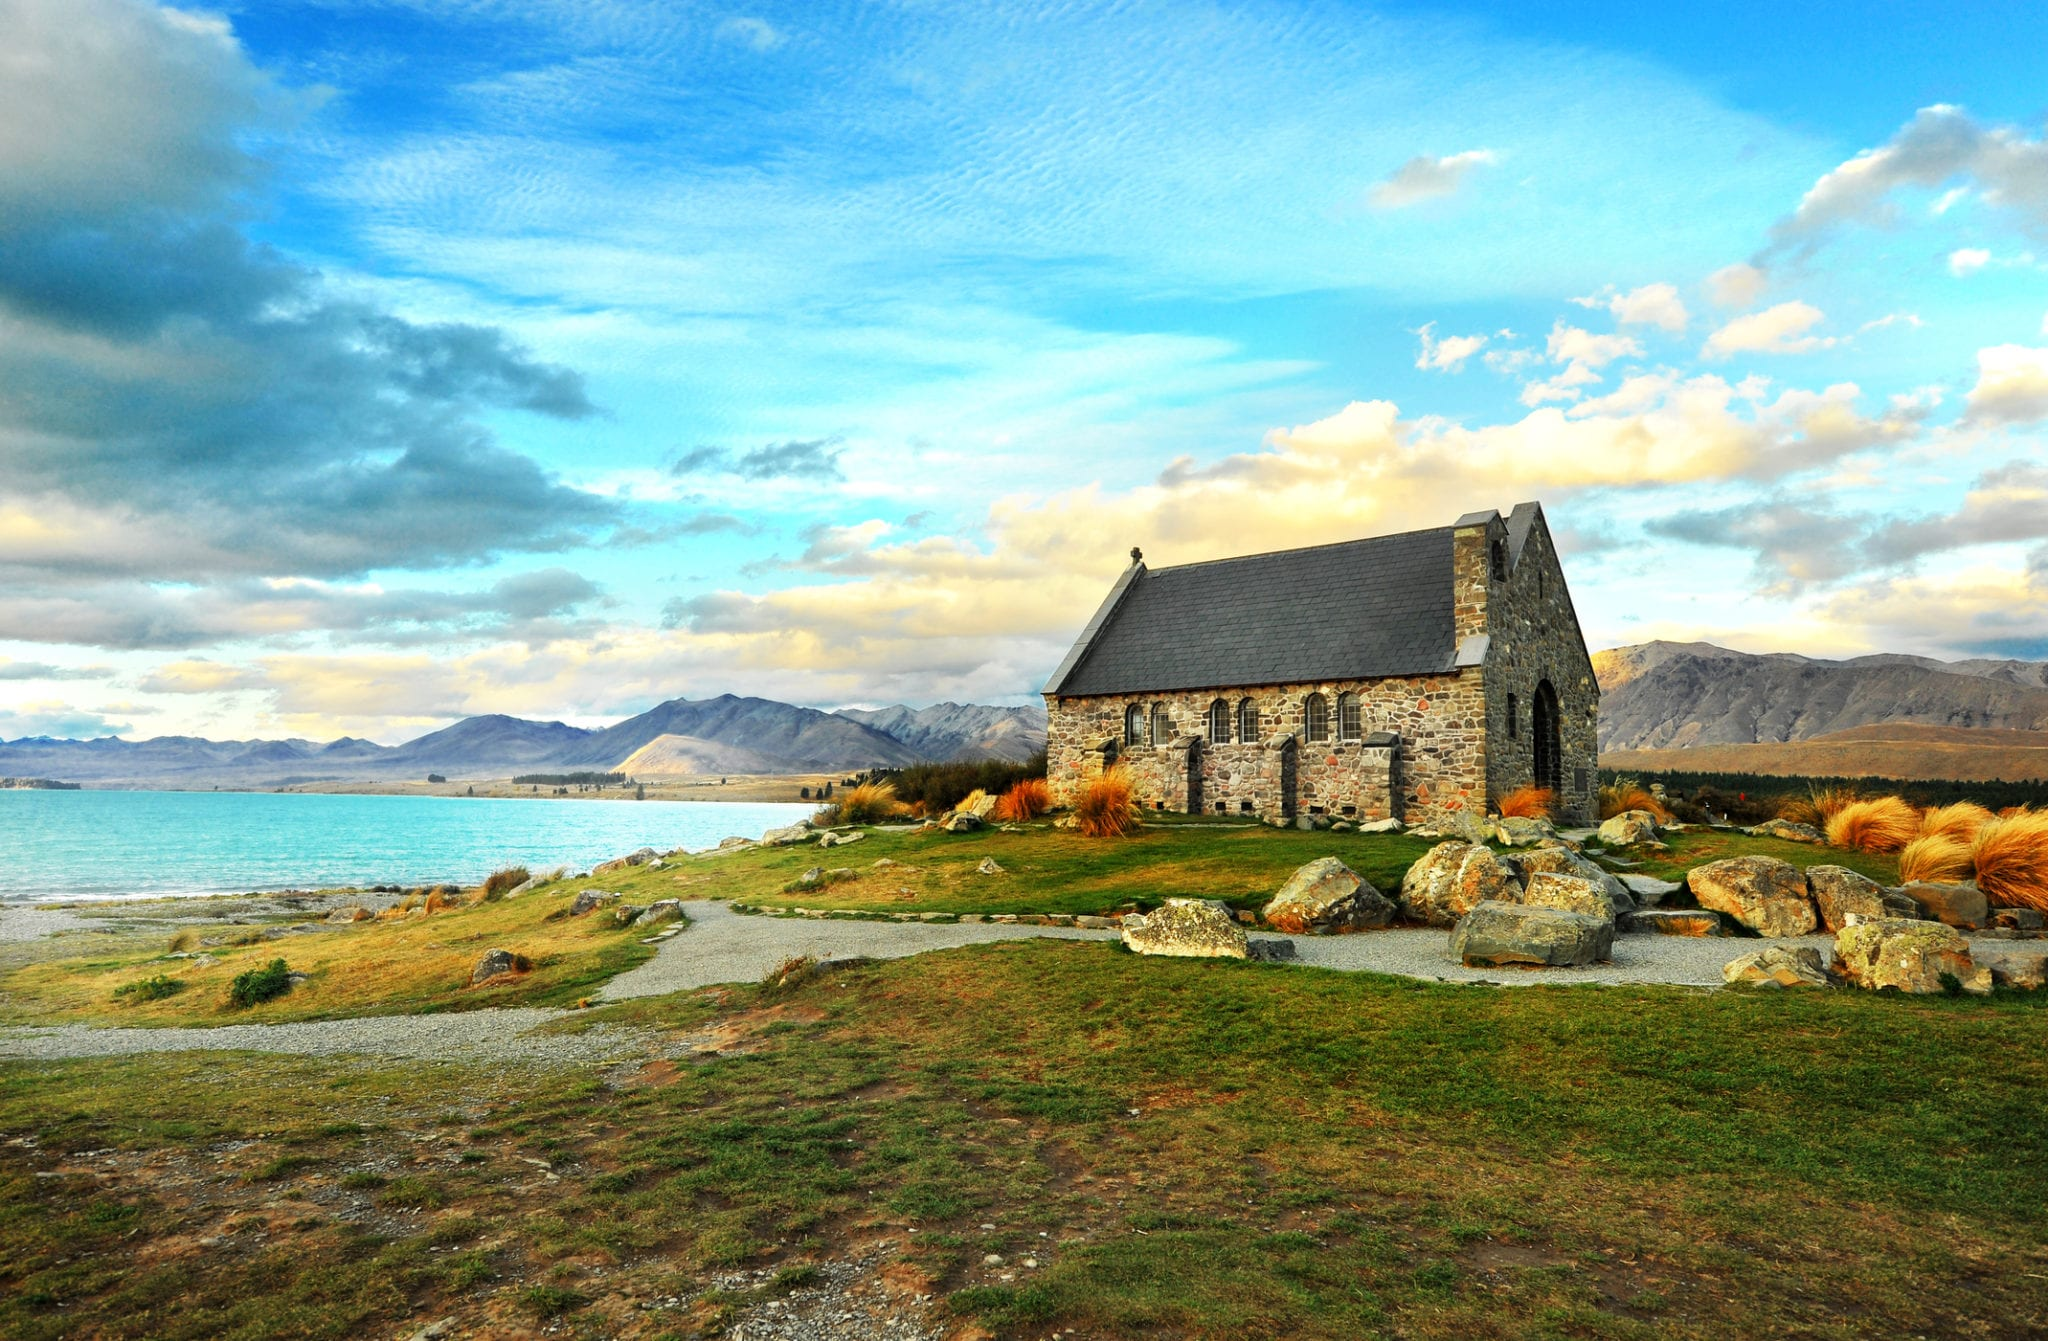 Church of the Good Shepherd wedding venue in Lake Tekapo, New Zealand